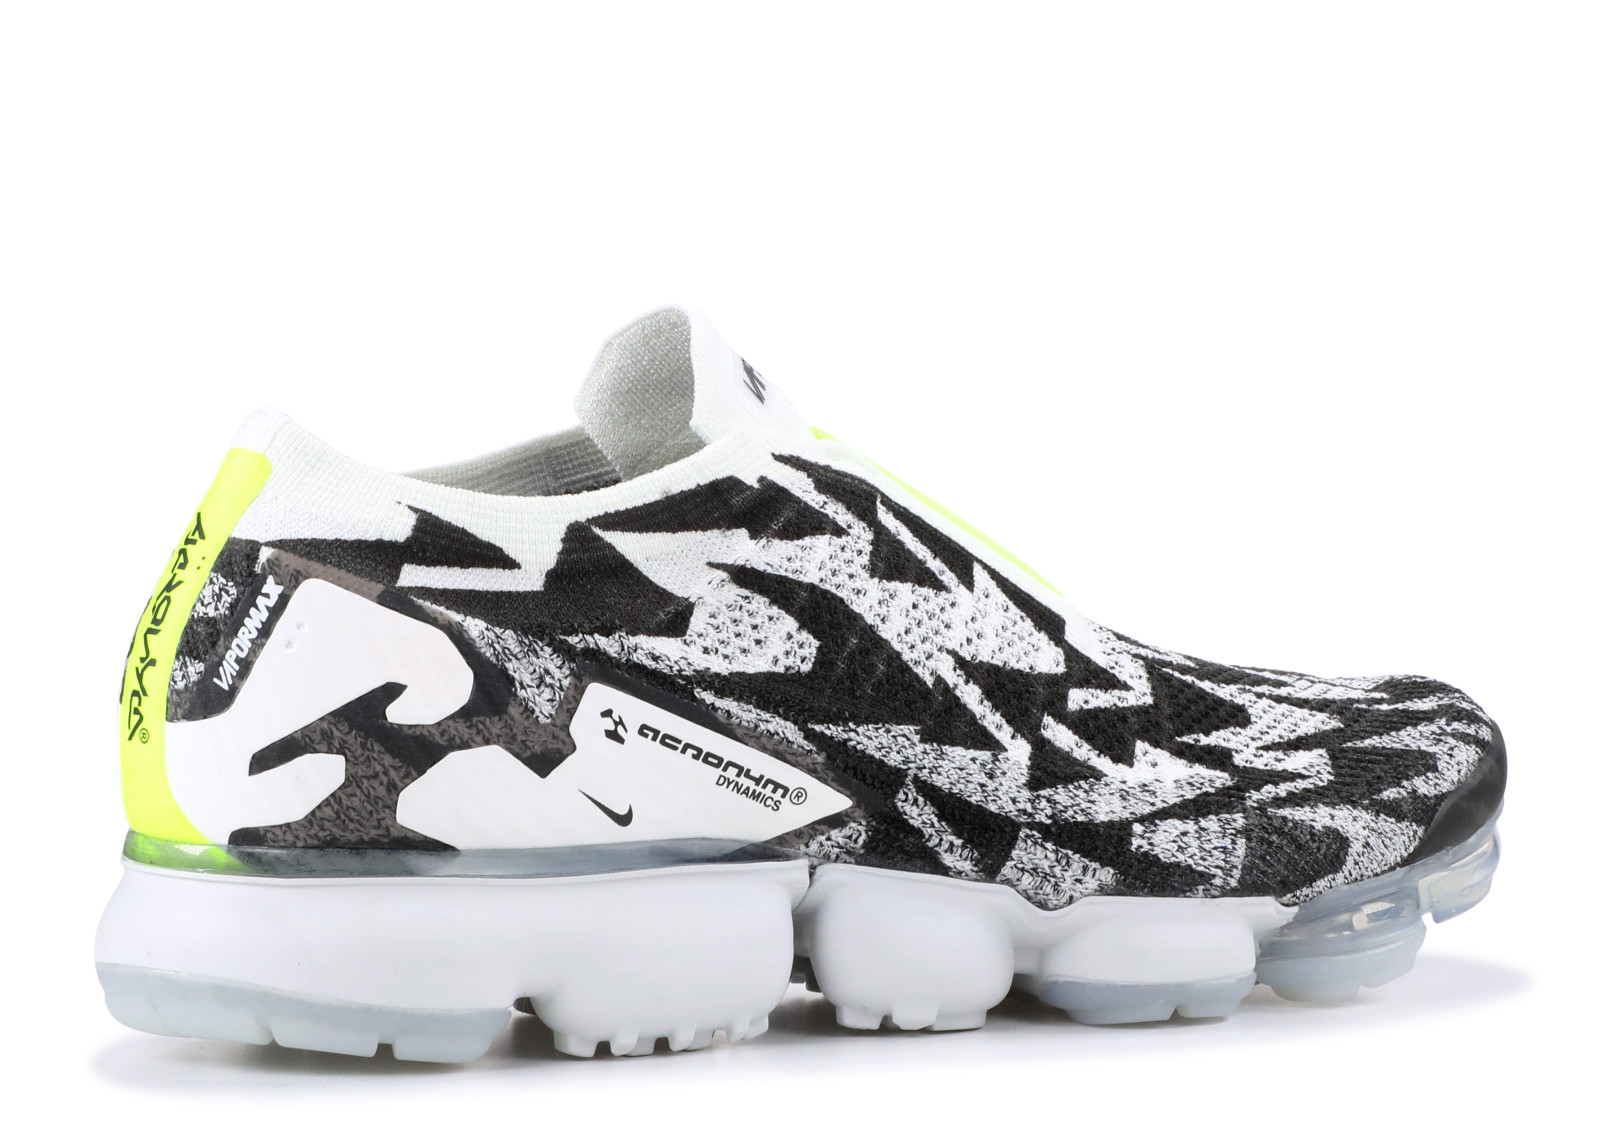 7215cad15f2f Nike Air VaporMax Moc 2 Acronym Light Bone - 3